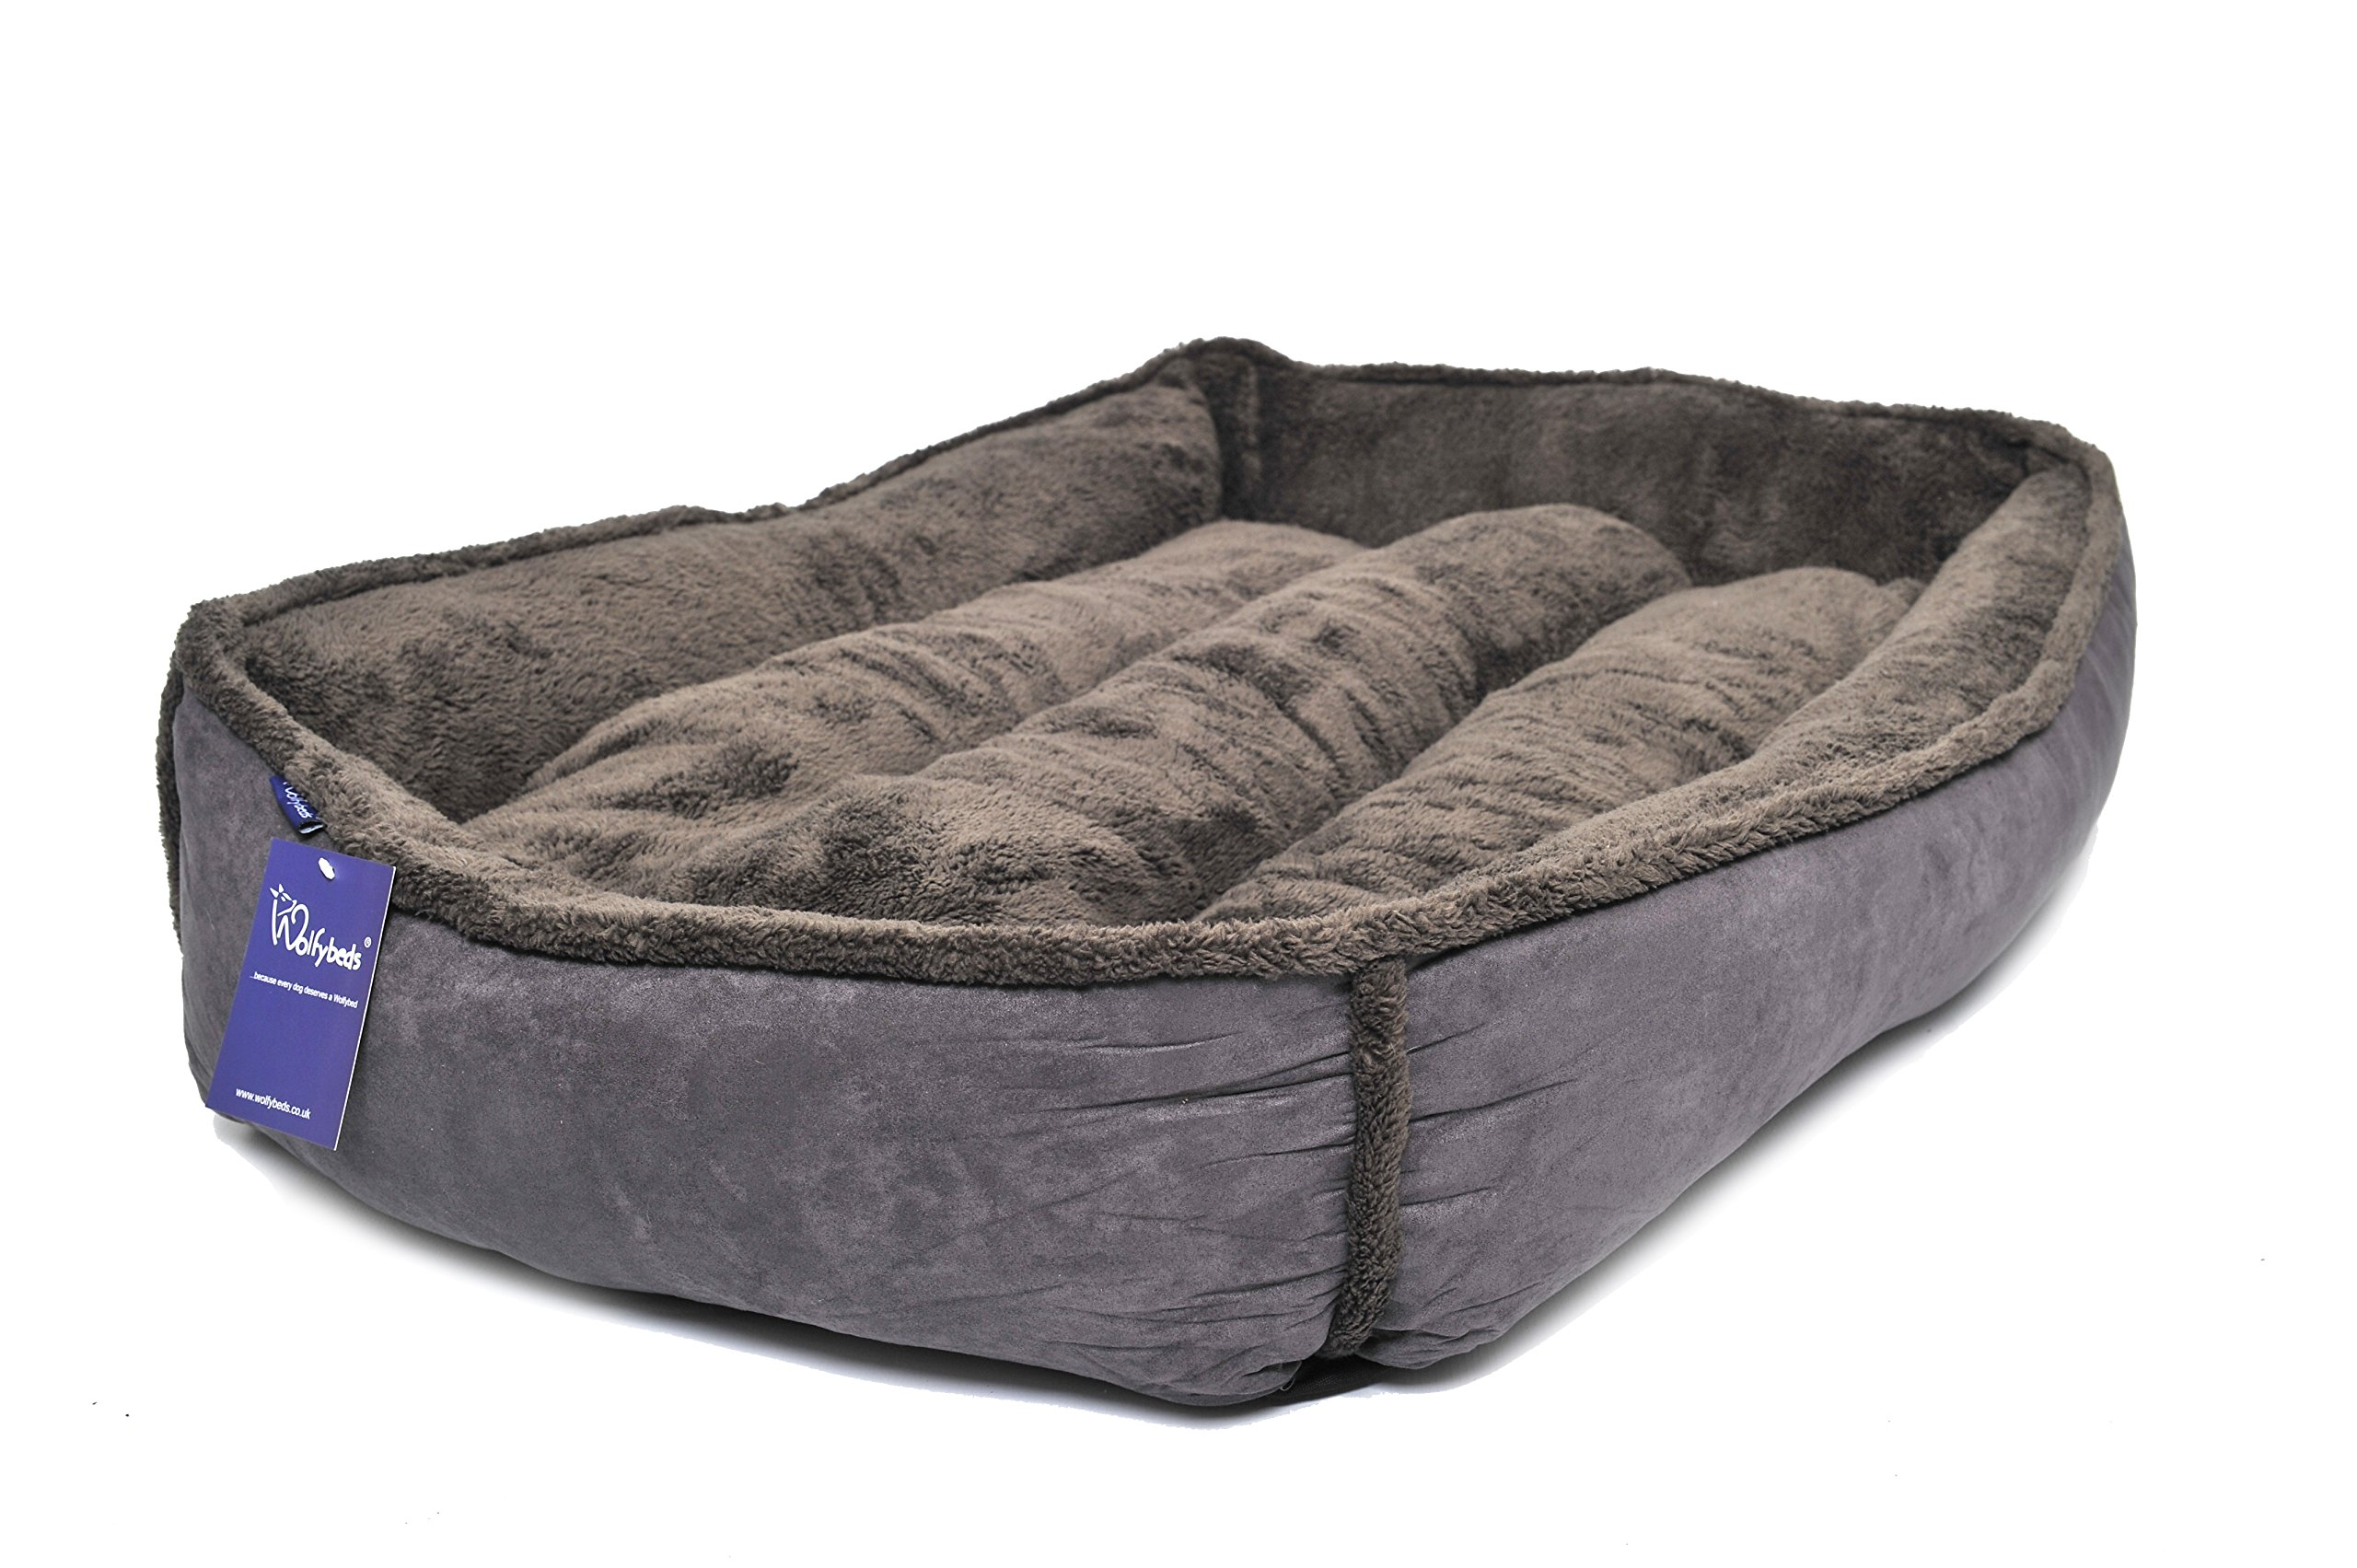 Wolfybeds Large Padded Fleece Dog Bed in Slate Grey (36″ x 24″) washable covers